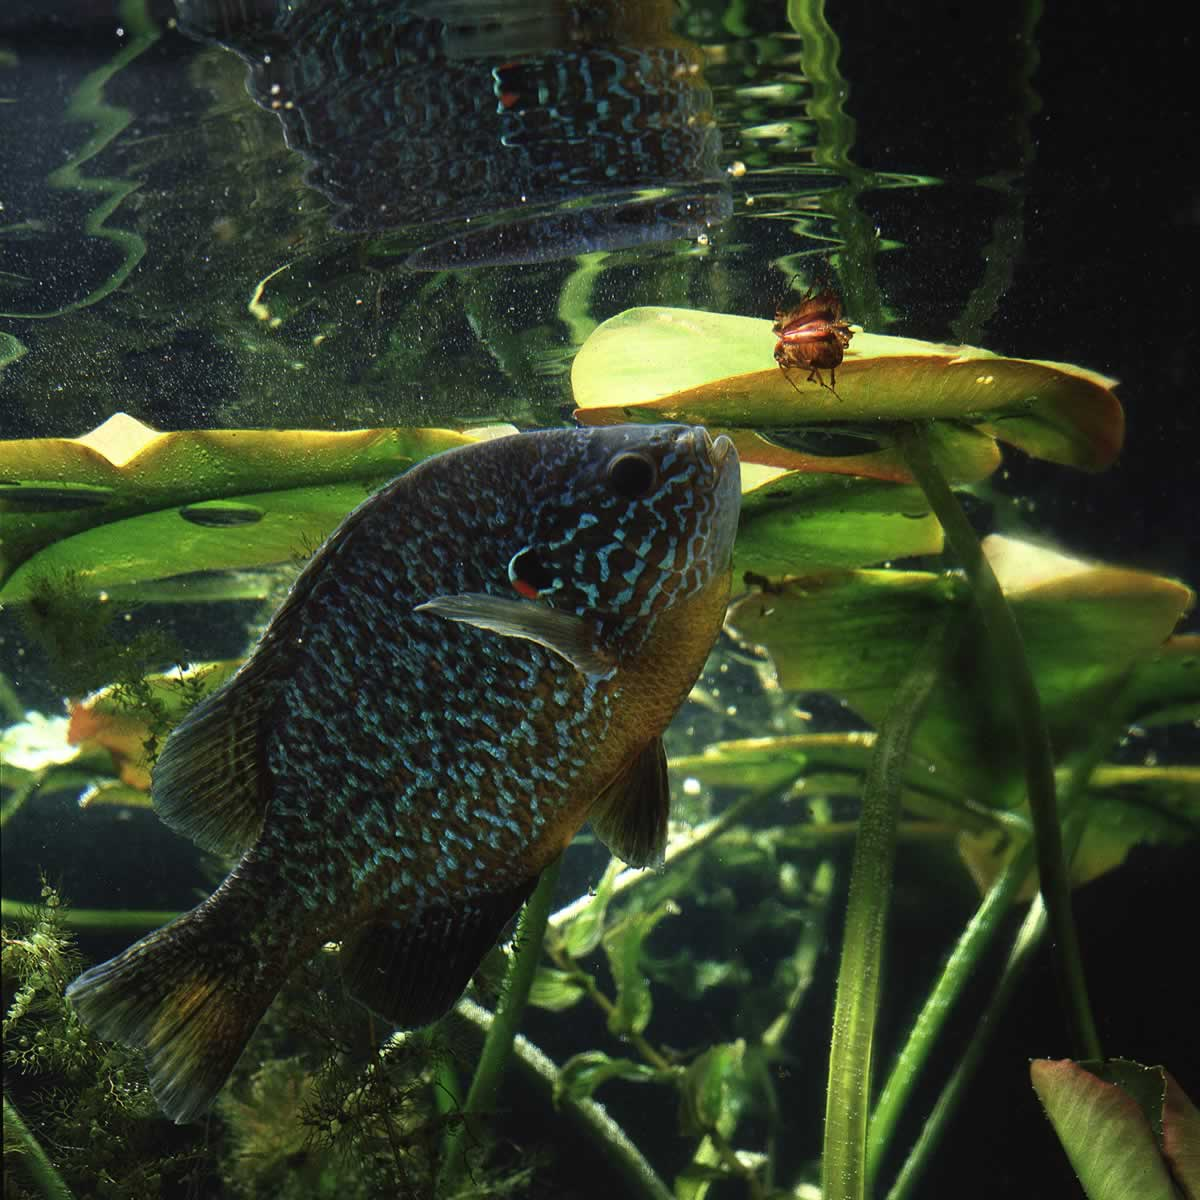 Underwater photo of a pumpkinseed sunfish